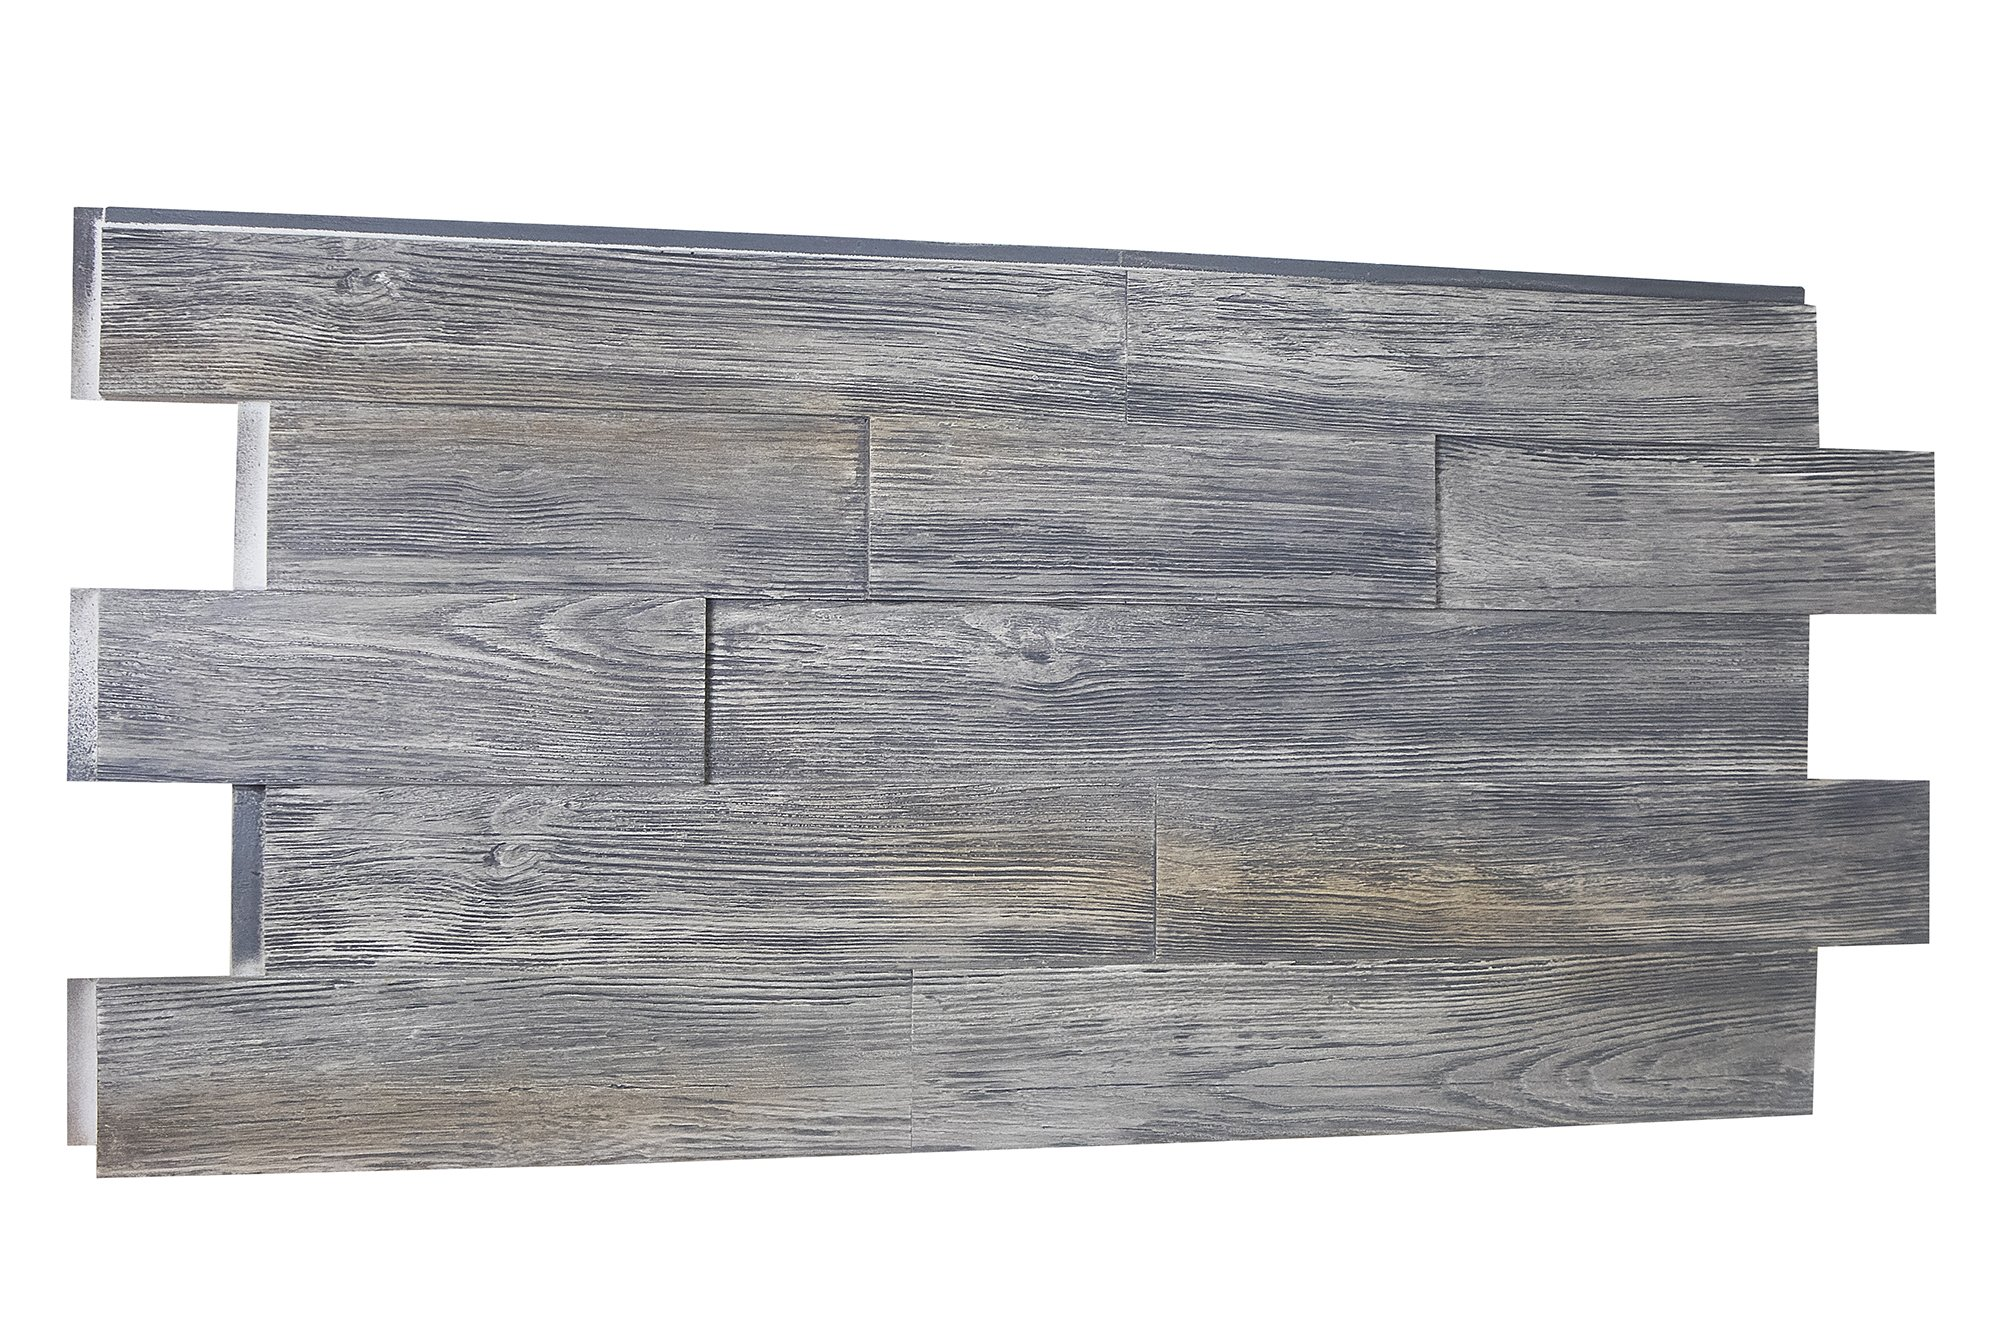 Raised Grain Transitional Faux Wood Panel - 7.51 SQ FT - Tongue and Groove (Weathered Barn)